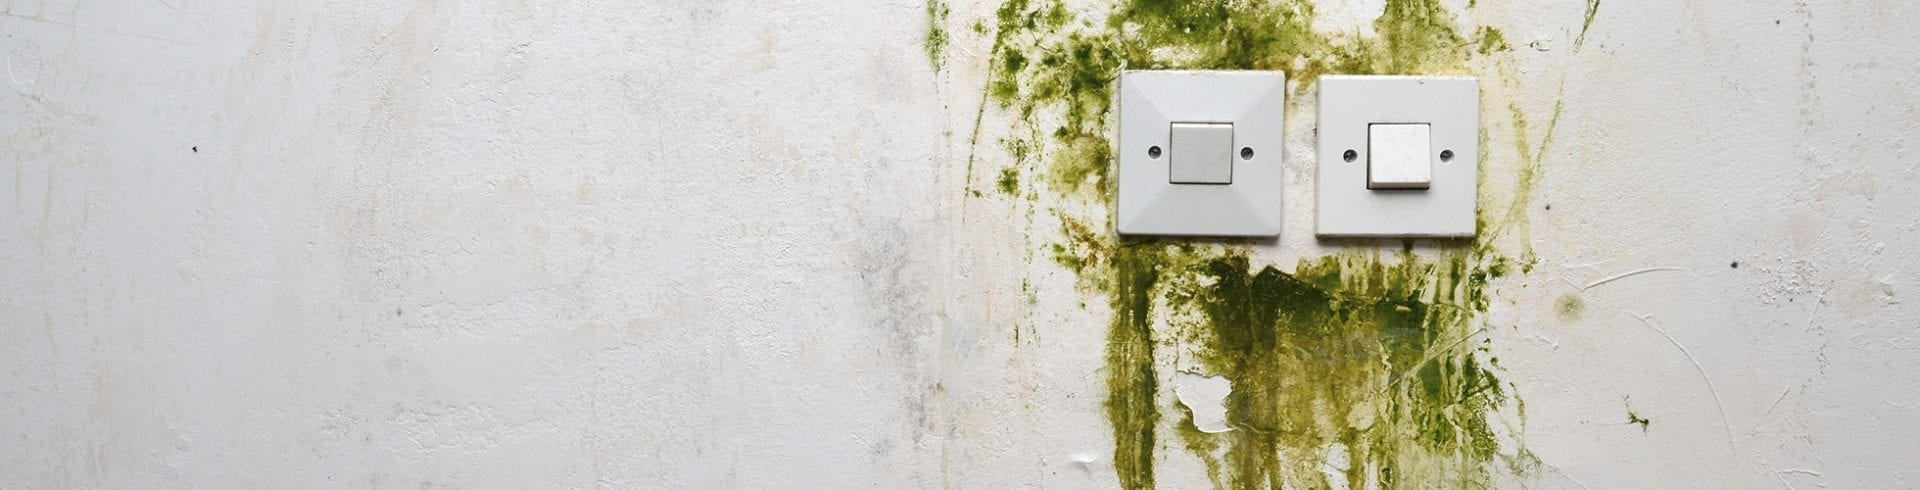 Control Moisture and Mold in Your Home | Blog | Mold Off®